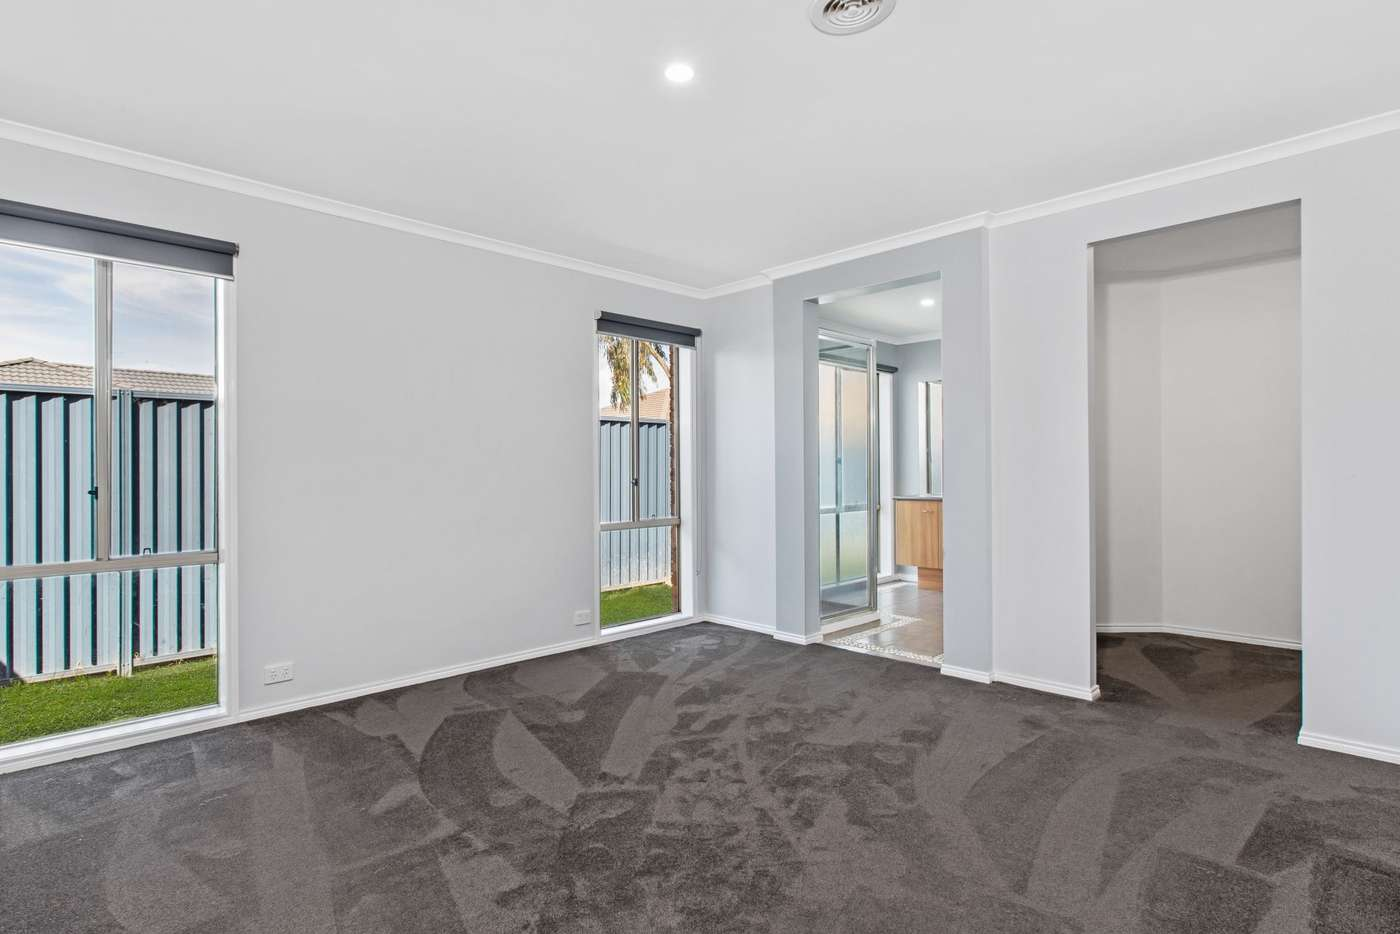 Sixth view of Homely house listing, 10 Candle Bark Court, Pakenham VIC 3810